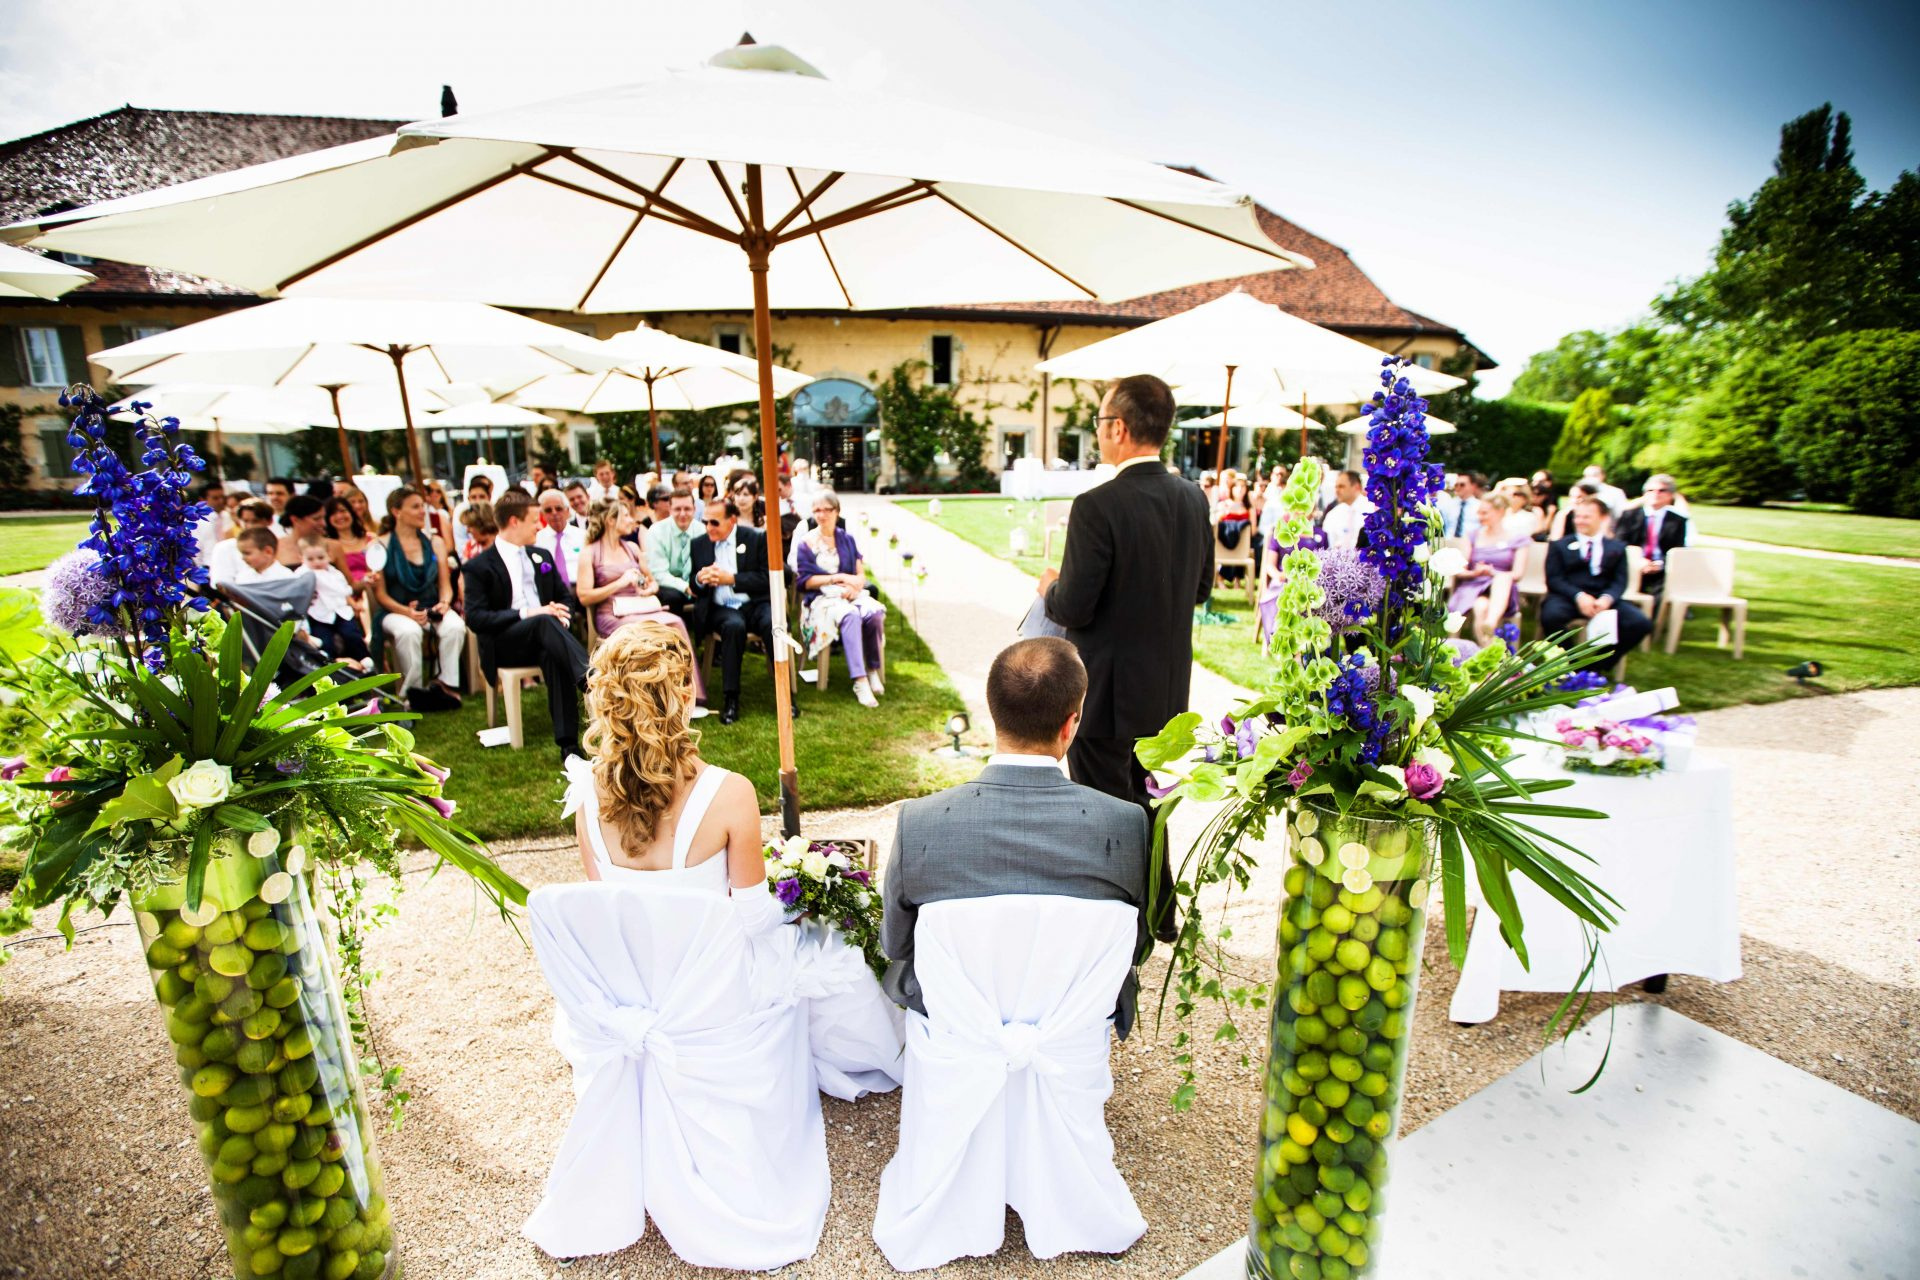 tlook 227 t2  - An eco-responsible wedding? What are the best practices?